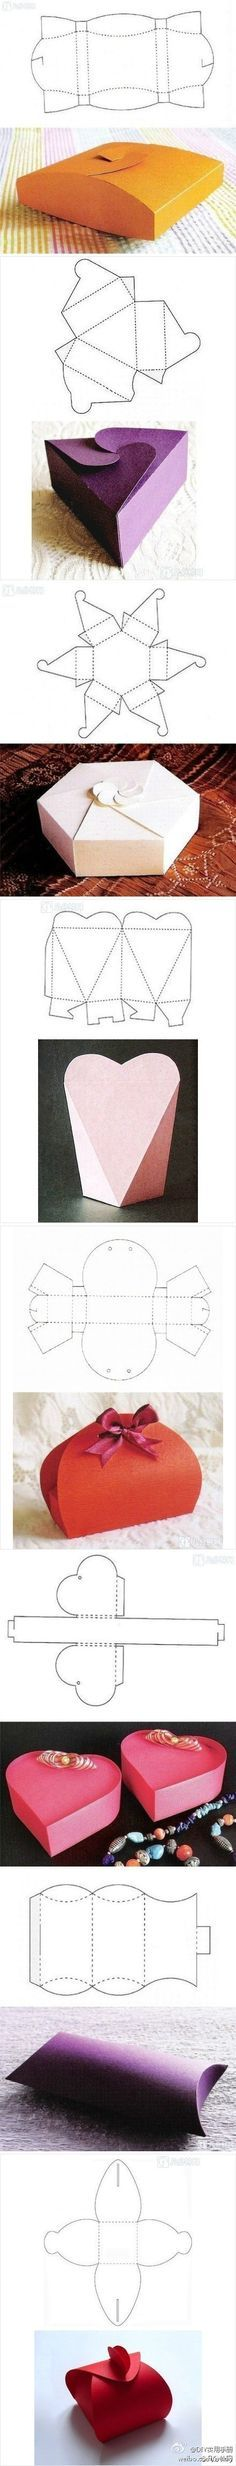 A selection of different shapes of boxes